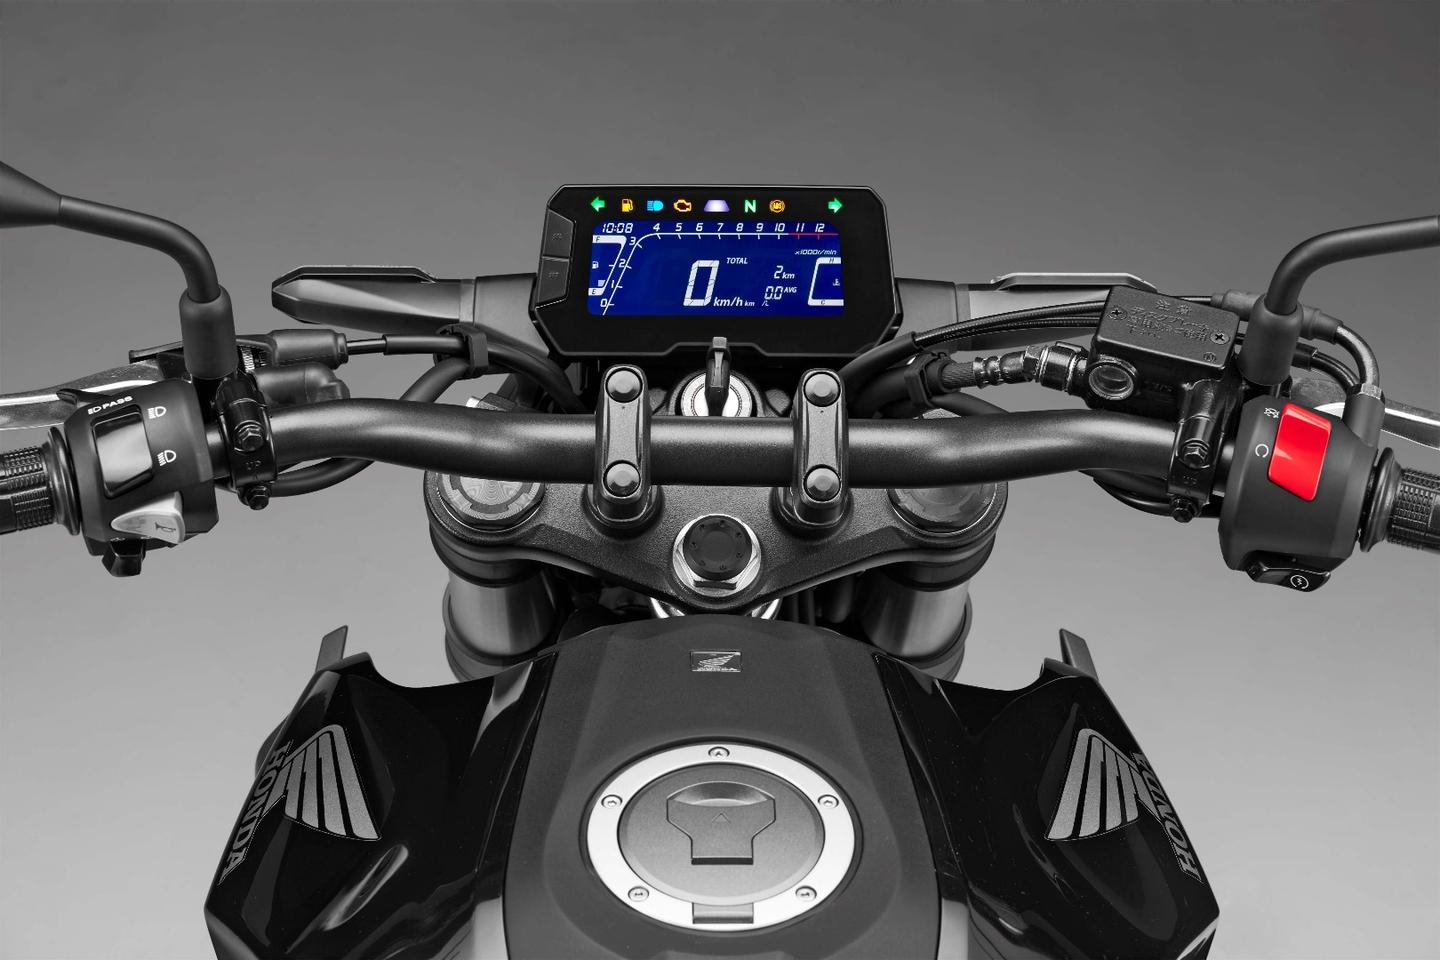 Honda CB300R: LCD dash looks terrific